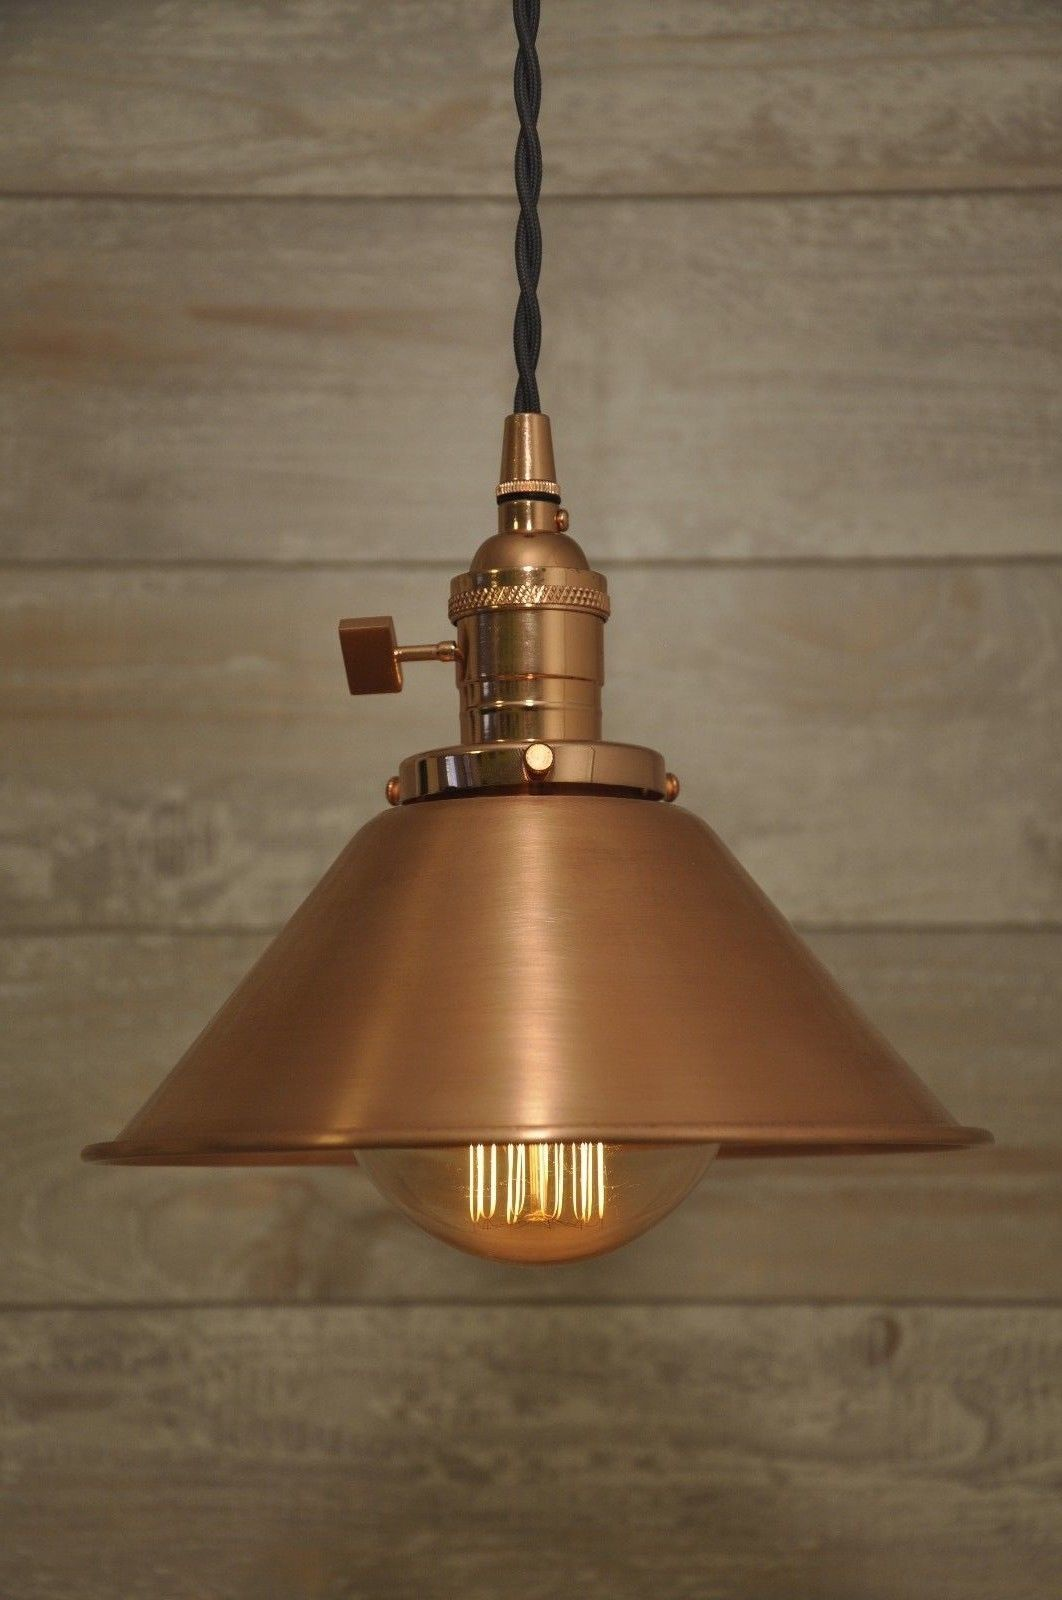 Retro Kitchen Light Fixtures Details About Brushed Copper Spun Cone Industrial Pendant Light